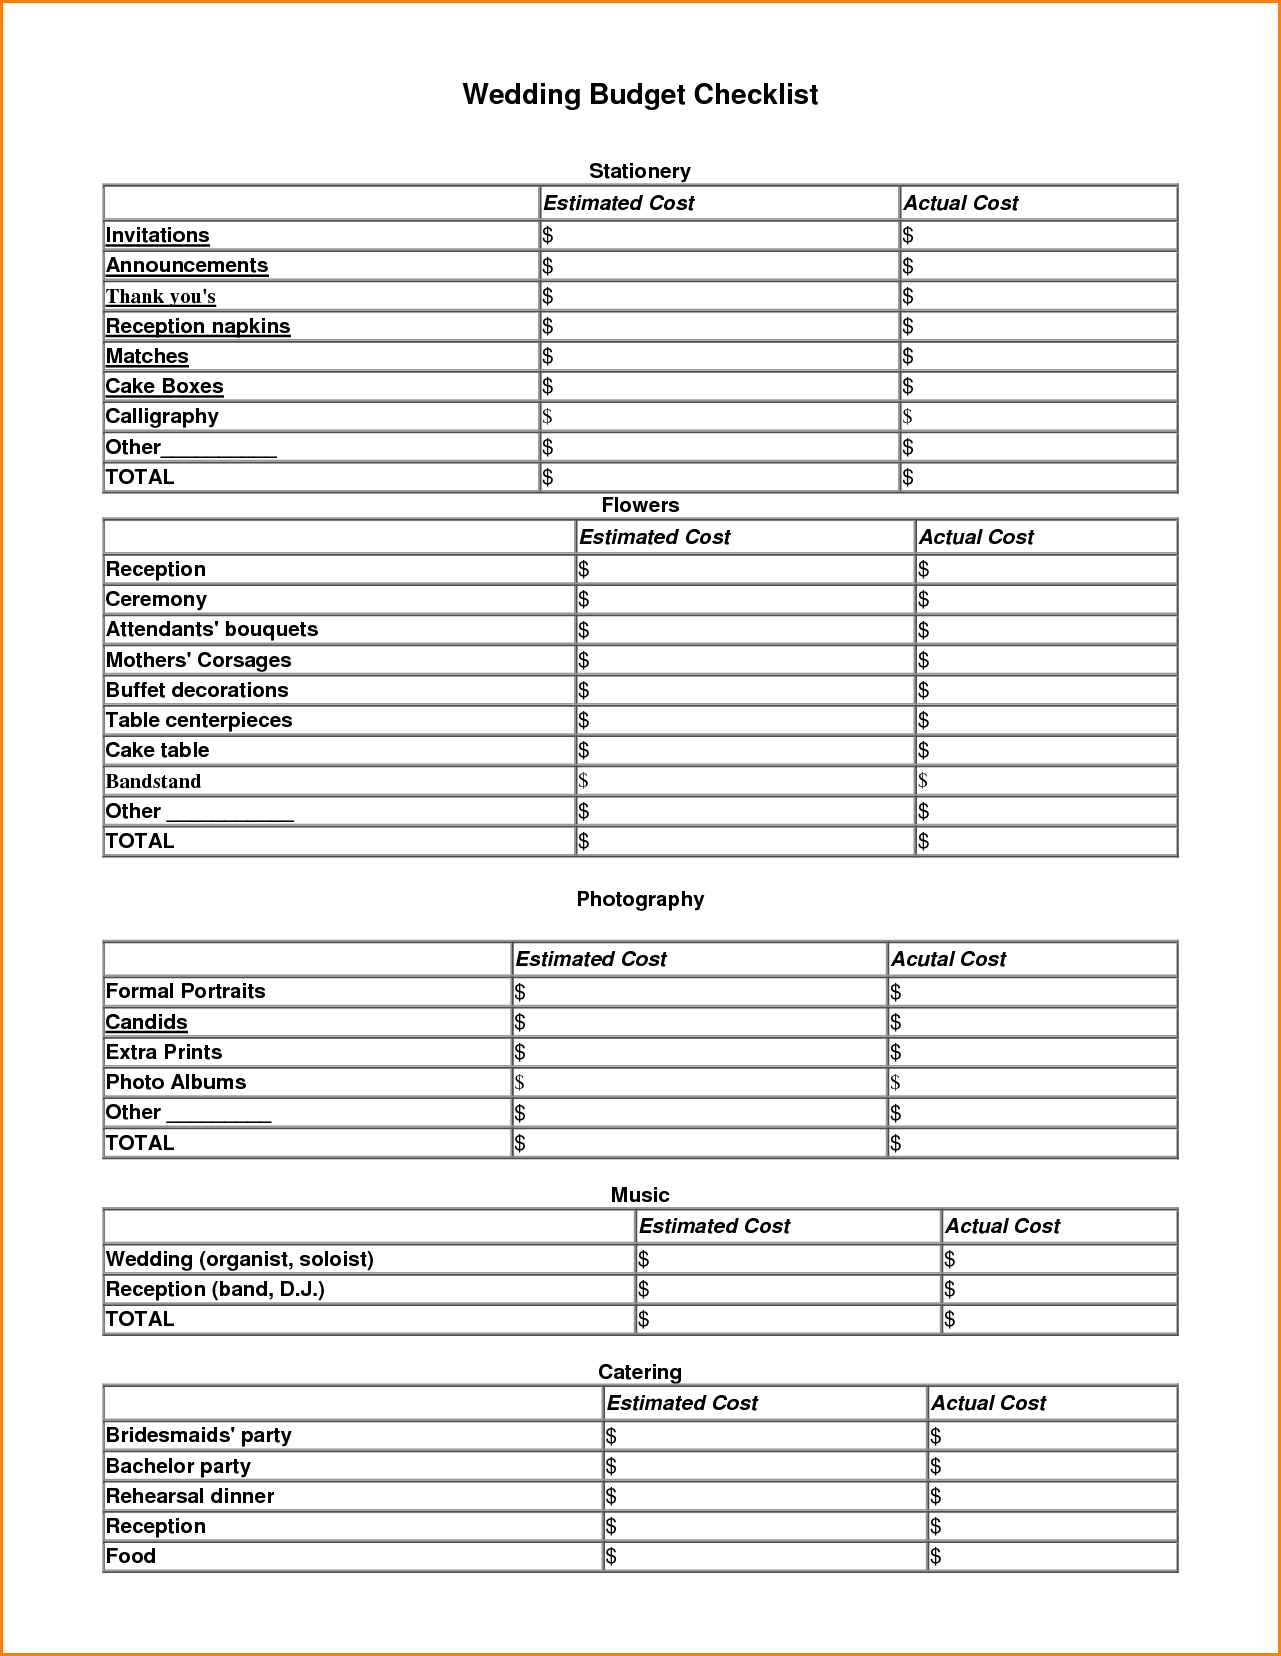 Wedding Budget Spreadsheet The Knot Inside Wedding Budget Excel Spreadsheet Best And The Knot  Askoverflow